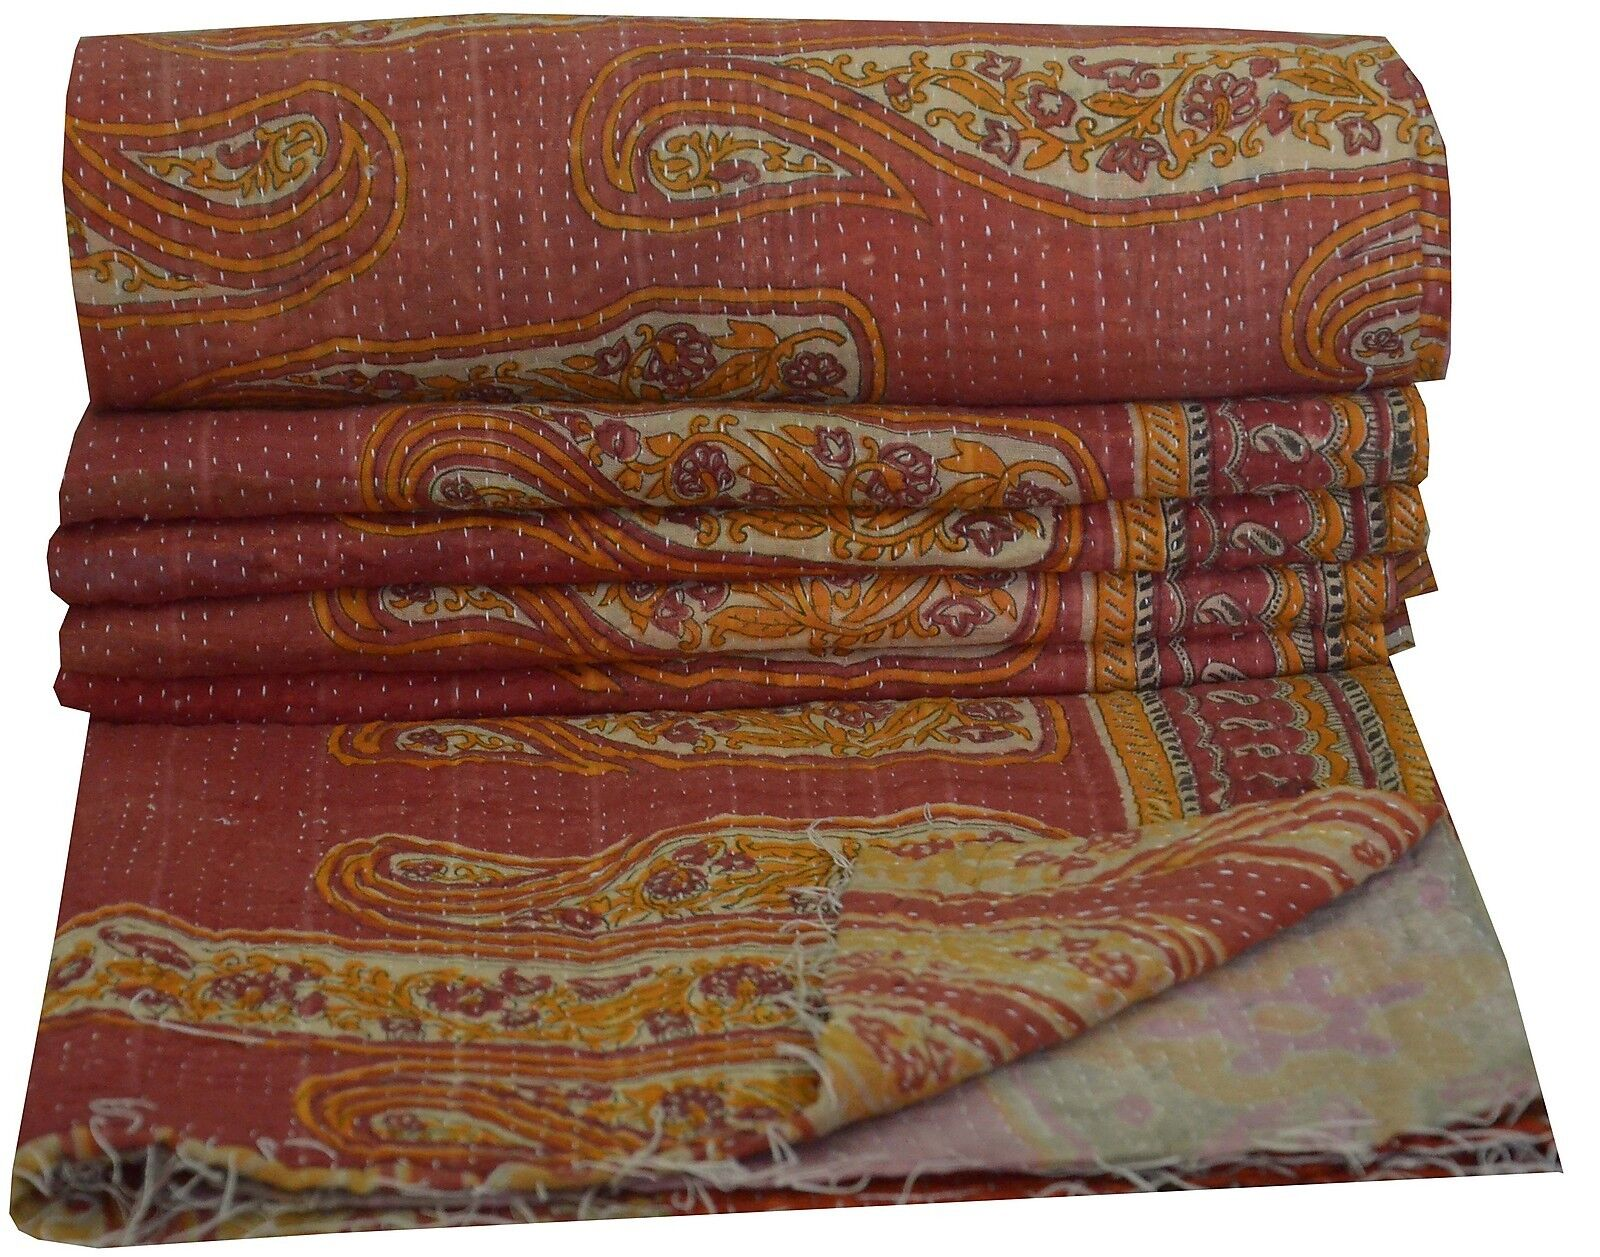 Indian Vintage Kantha Cotton Quilt Patchwork Blanket Bedding Bedspread Twin Größe